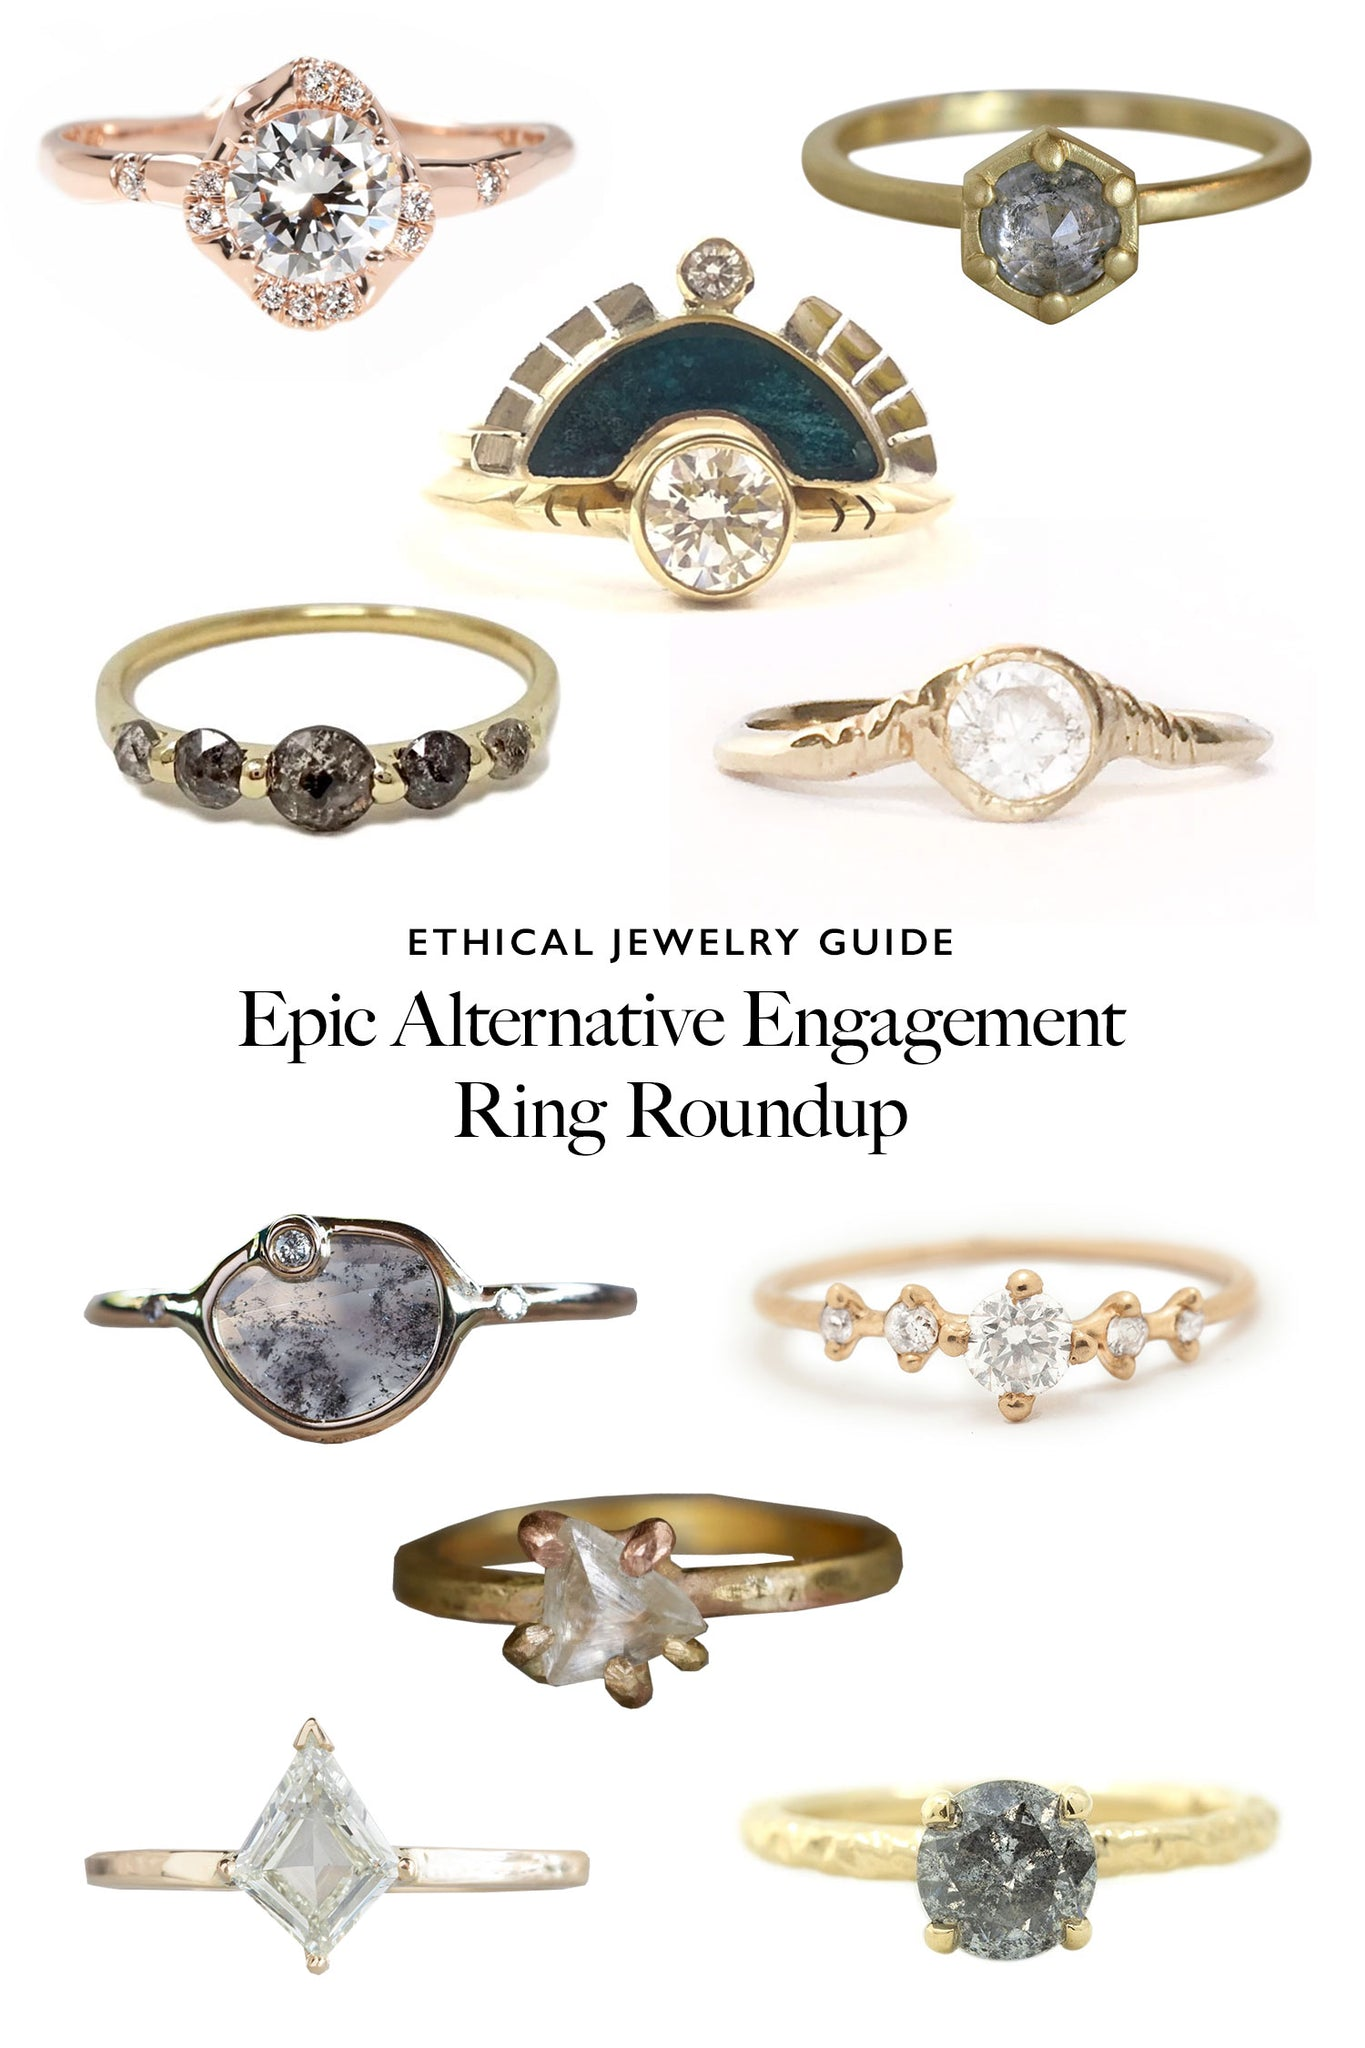 Top 10 Ethical Engagement Ring Roundup: The Most Epic & Conflict-Free Alternative Wedding Jewelry